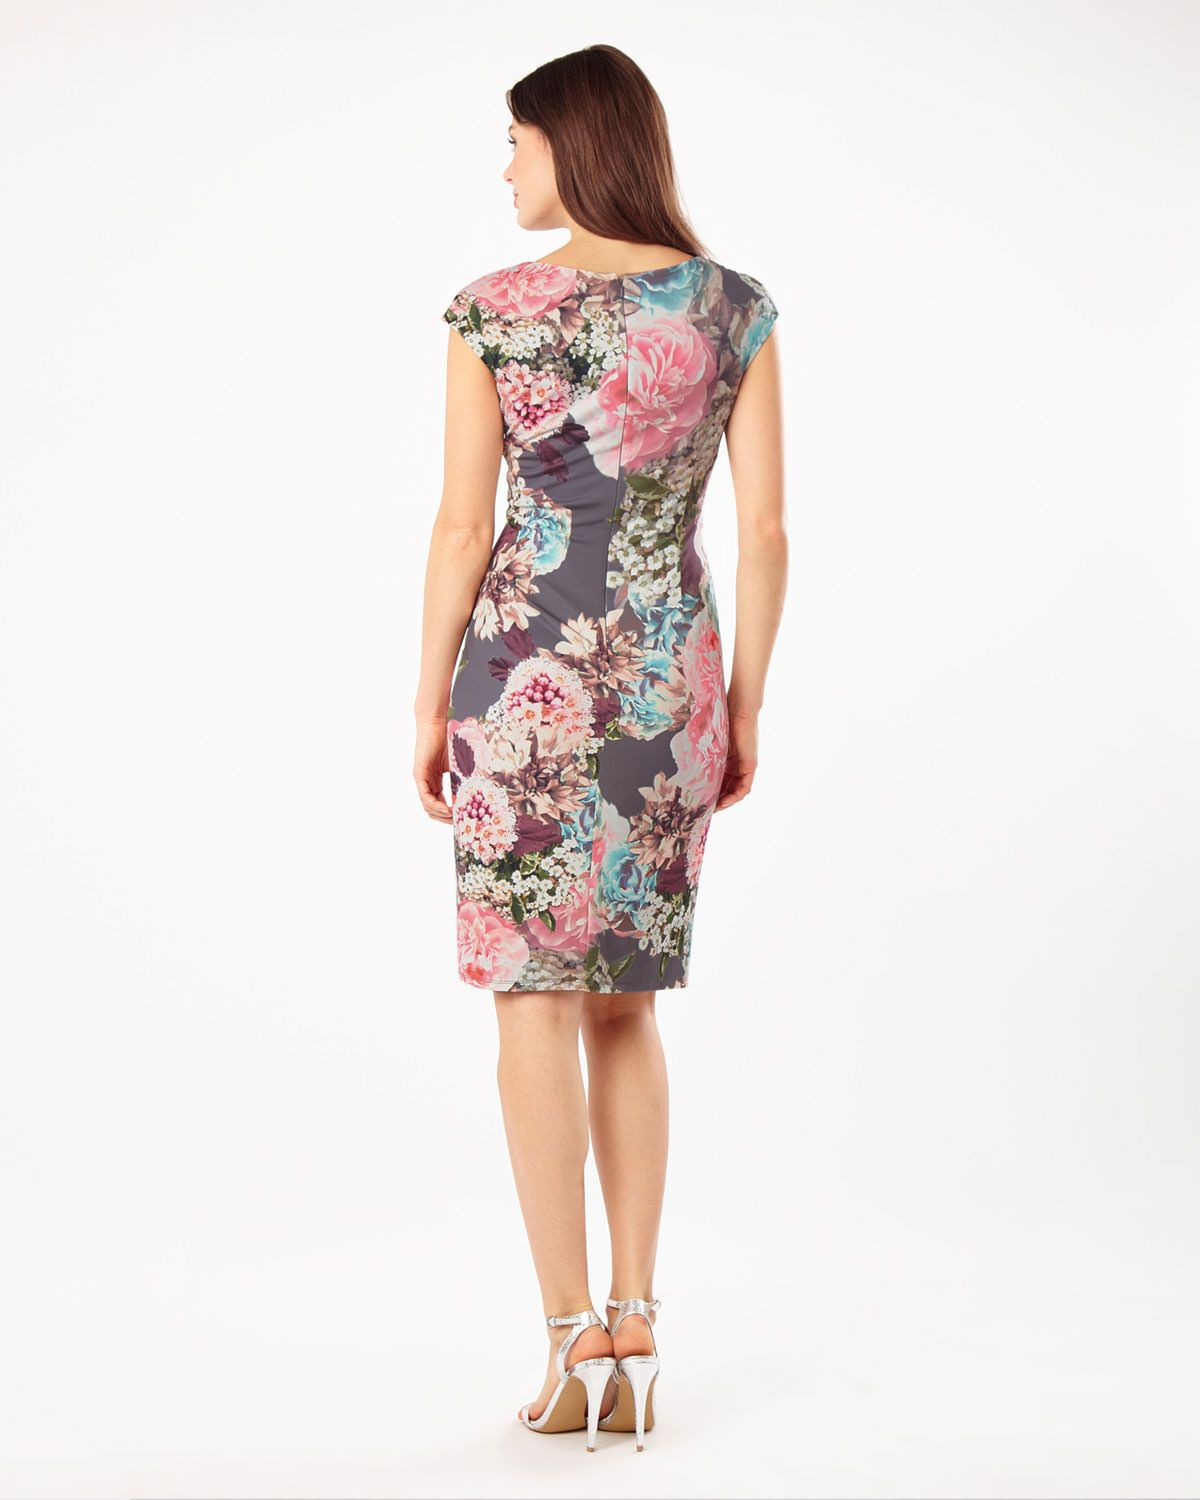 A Slinky Jersey Dress In A Beautiful Floral Print With A